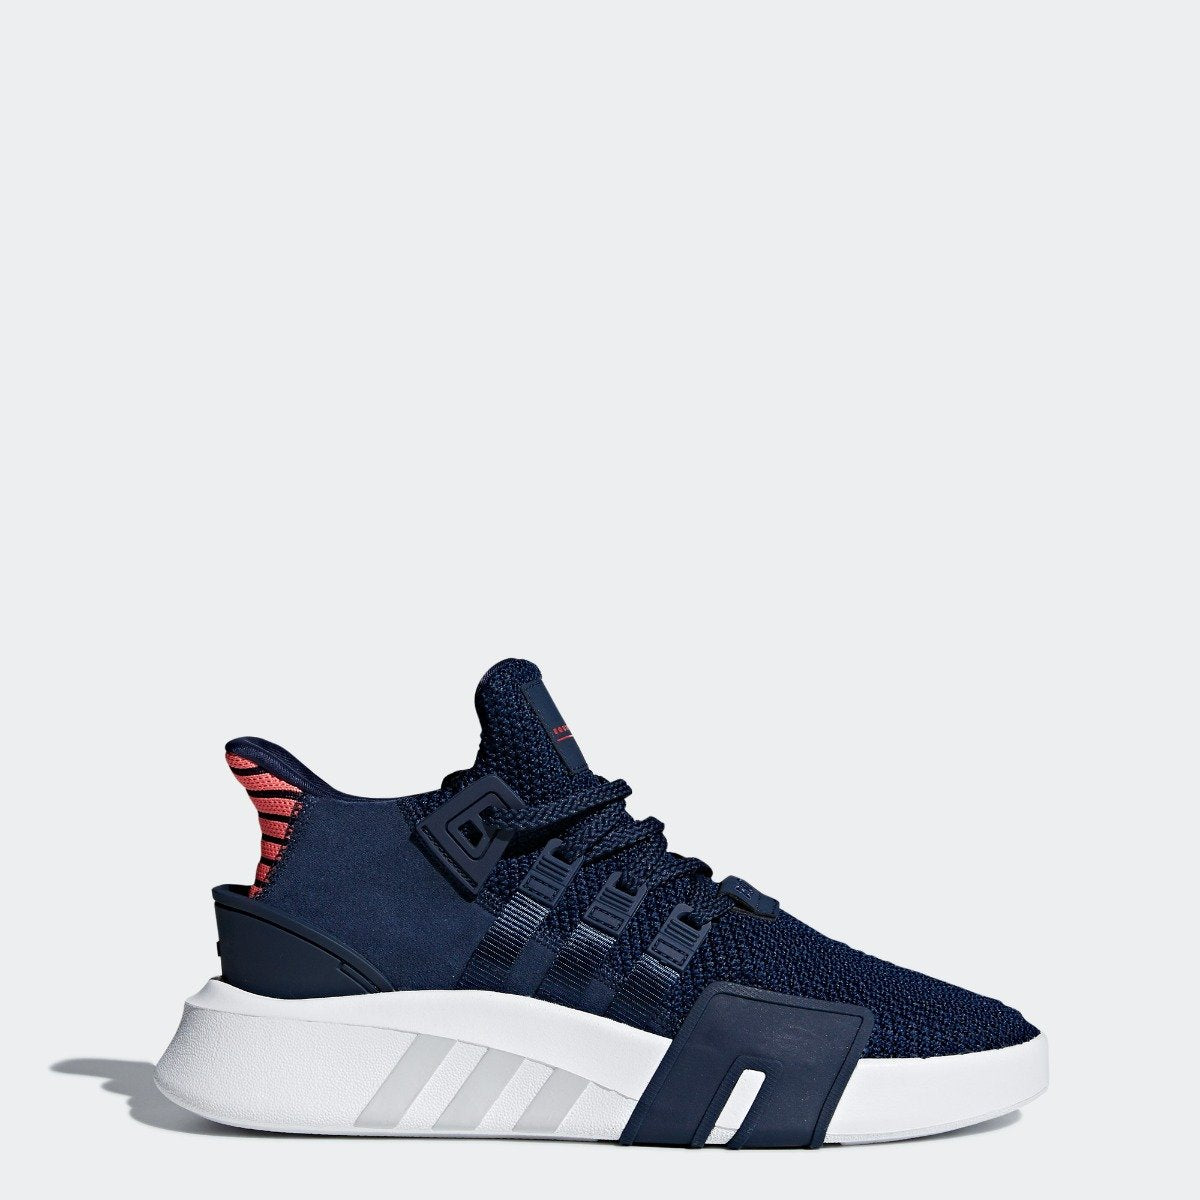 half off ff4b0 6af9c Mens adidas Originals EQT Bask ADV Shoes Collegiate Navy with Real Coral